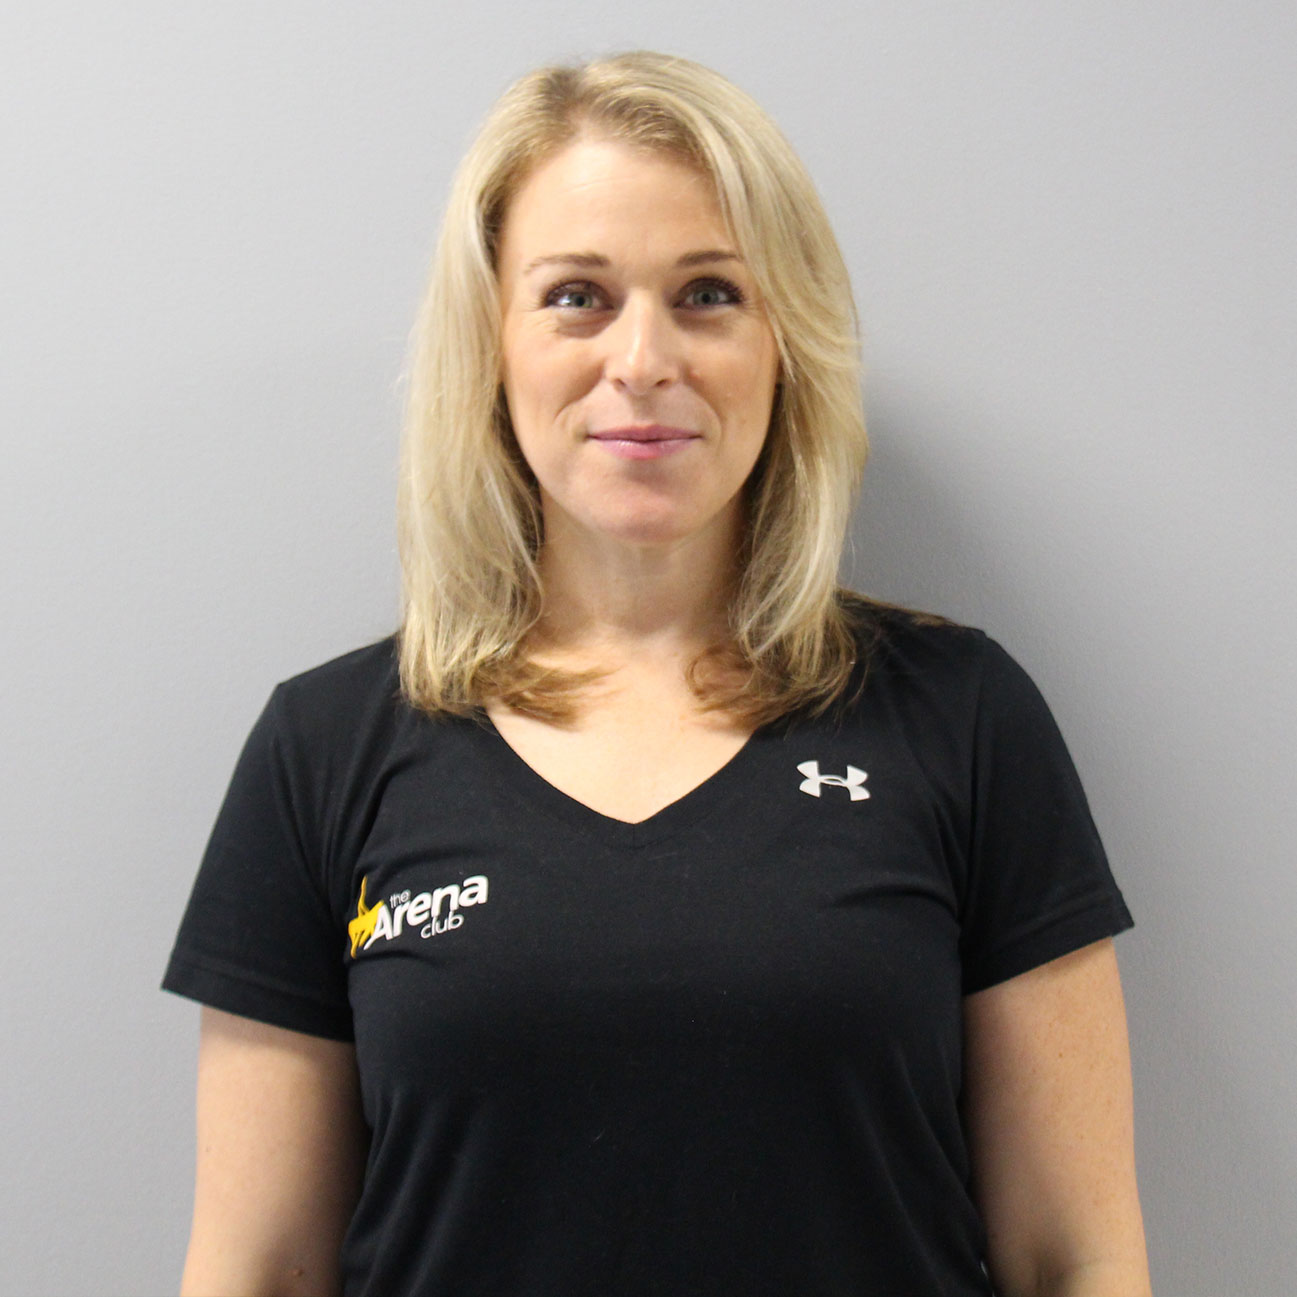 Shauna Rivera - Certified Personal Trainer & Group Fitness Instructor